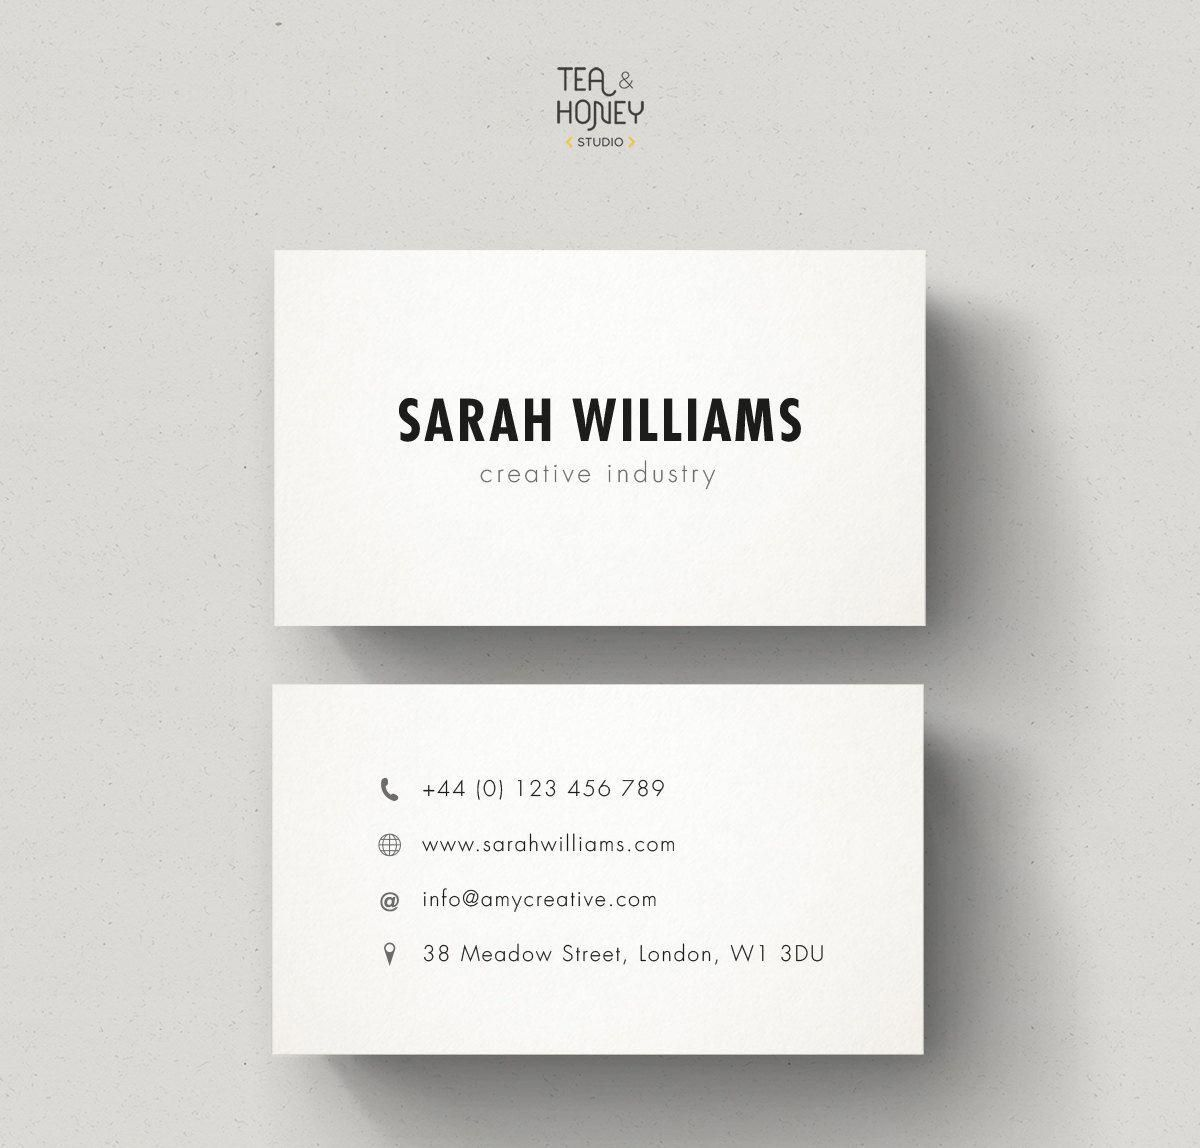 minimalistic business cards calling card by teaandhoneystudio batteryreconditioningbusinessforsale - Where To Buy Calling Cards